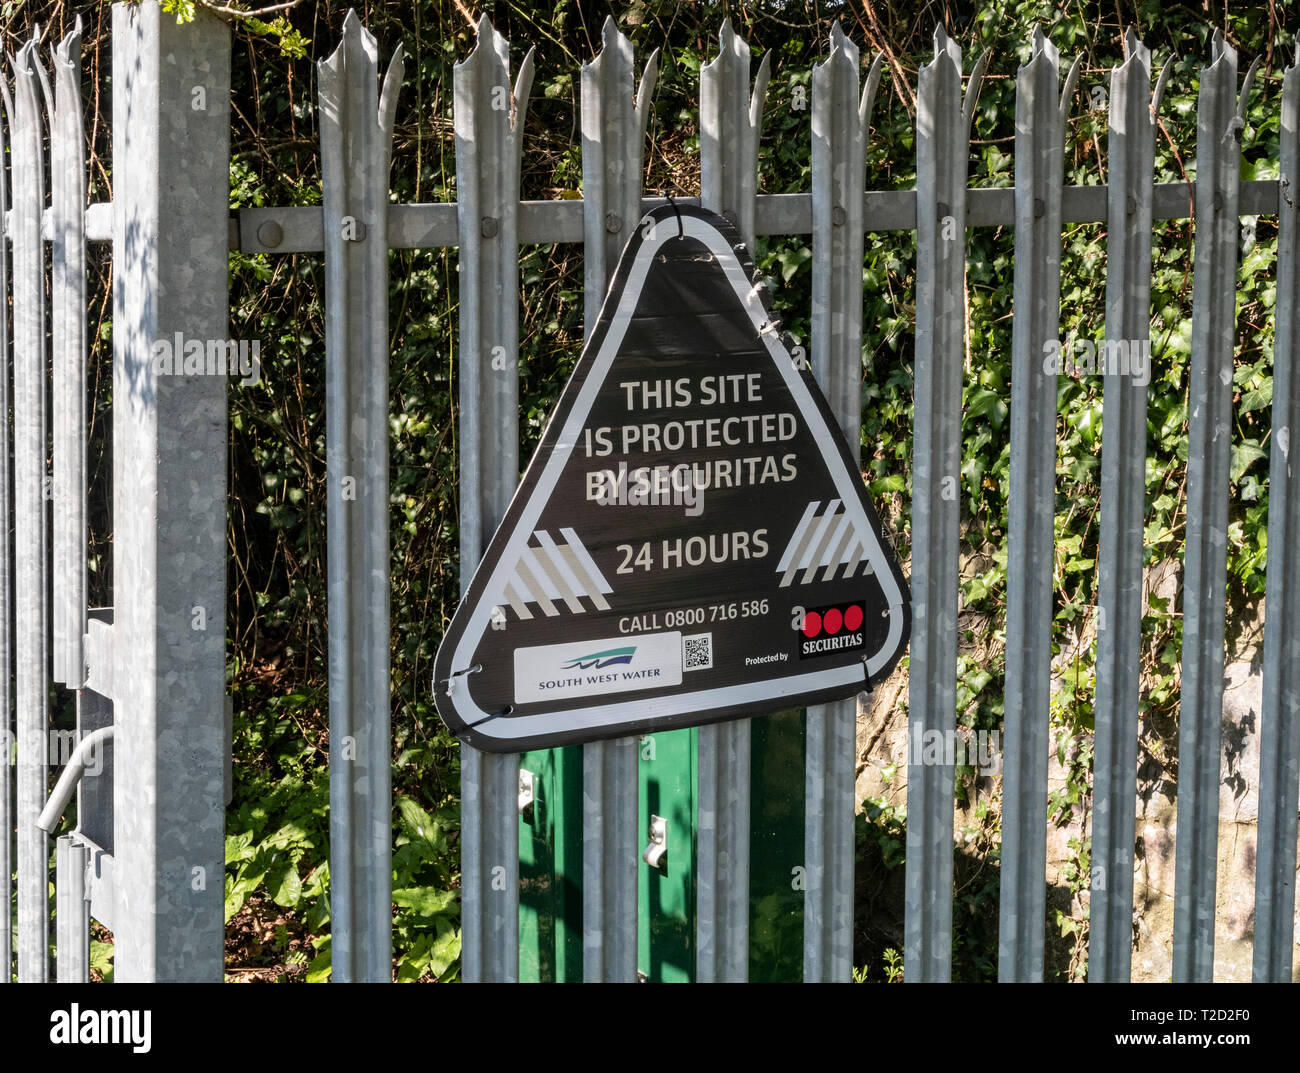 Securitas sign on a steel fence, 24 hour security, notice, Stock Photo